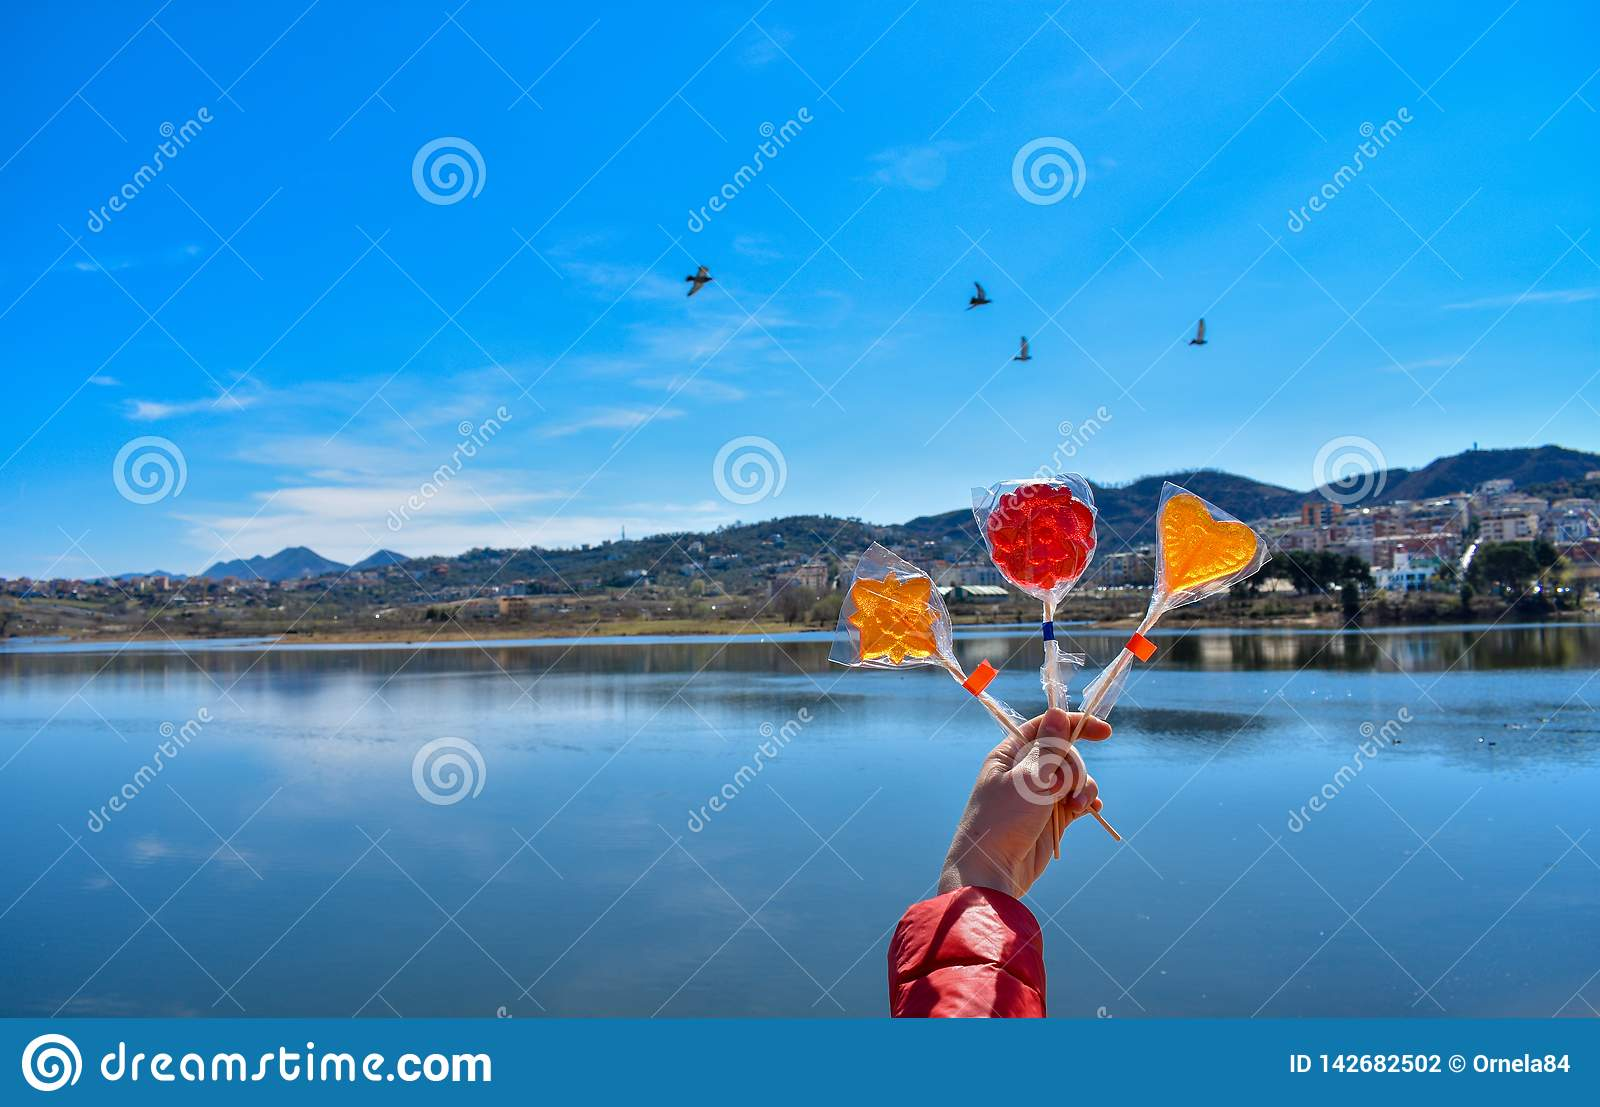 Human hand holding colorful lollipops against the artificial lake